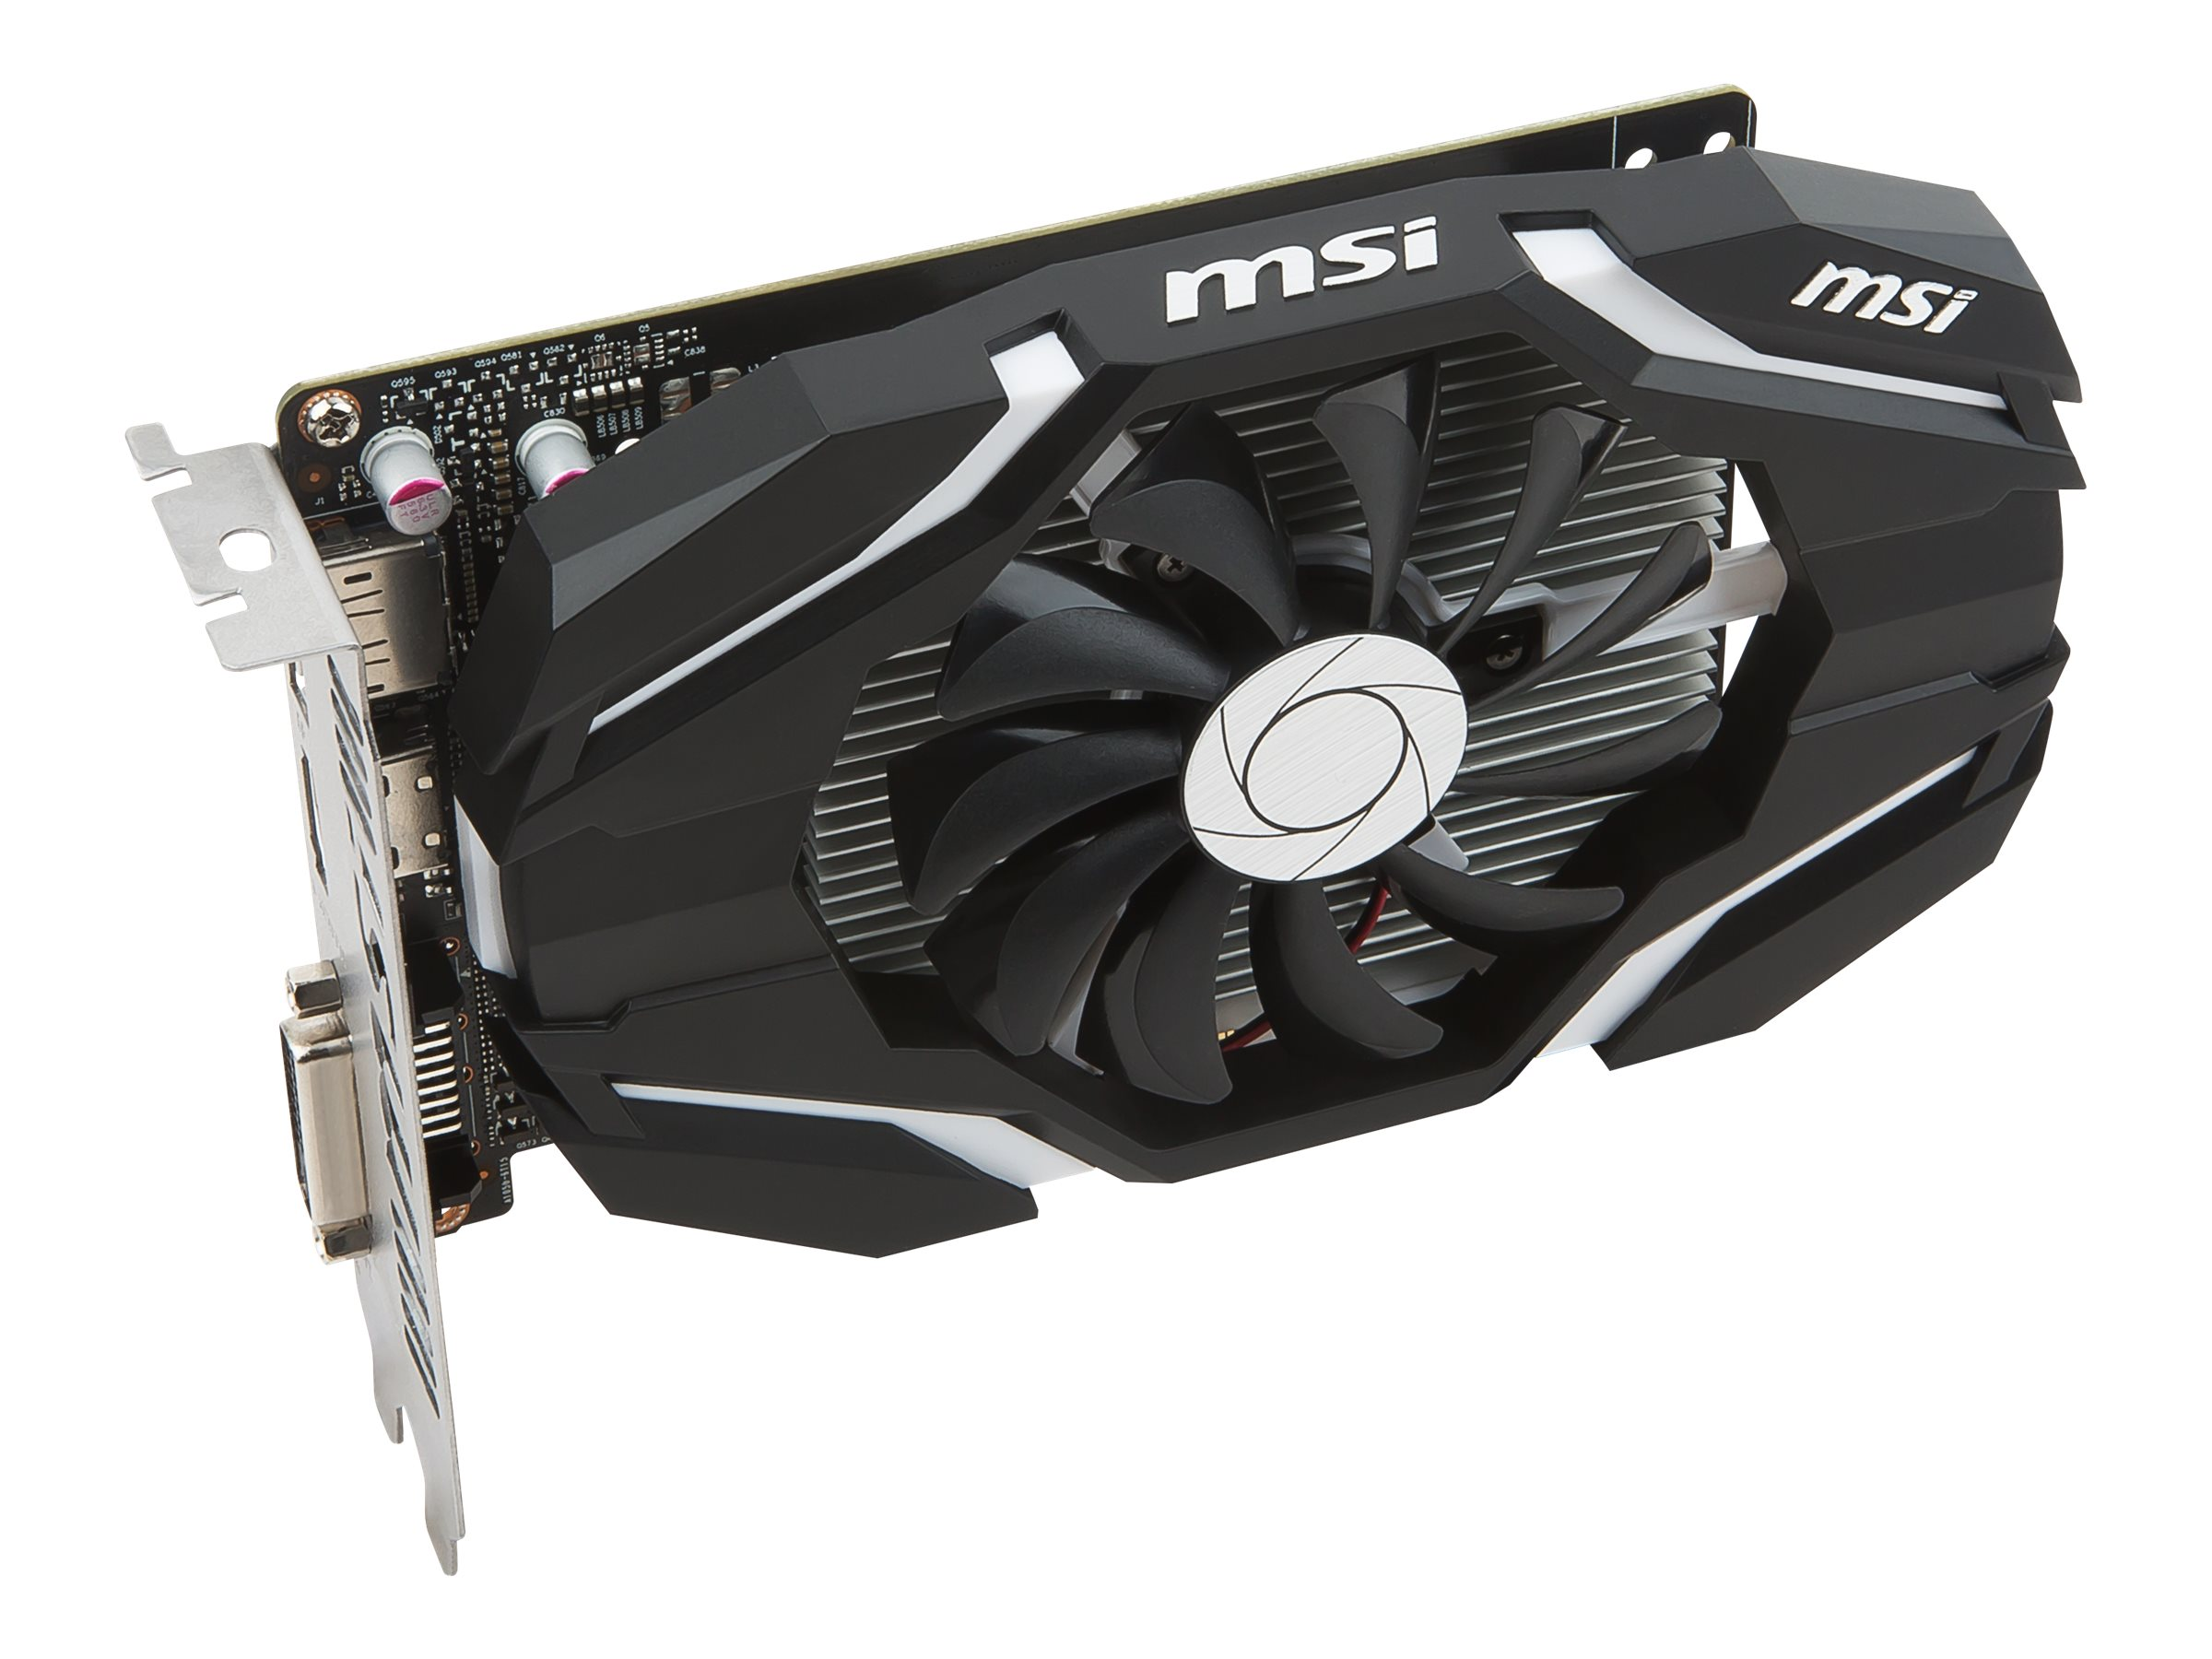 Microstar GeForce GTX 1050 PCIe 3.0 x16 Overclocked Graphics Card, 2GB GDDR5, GTX 1050 2G OC